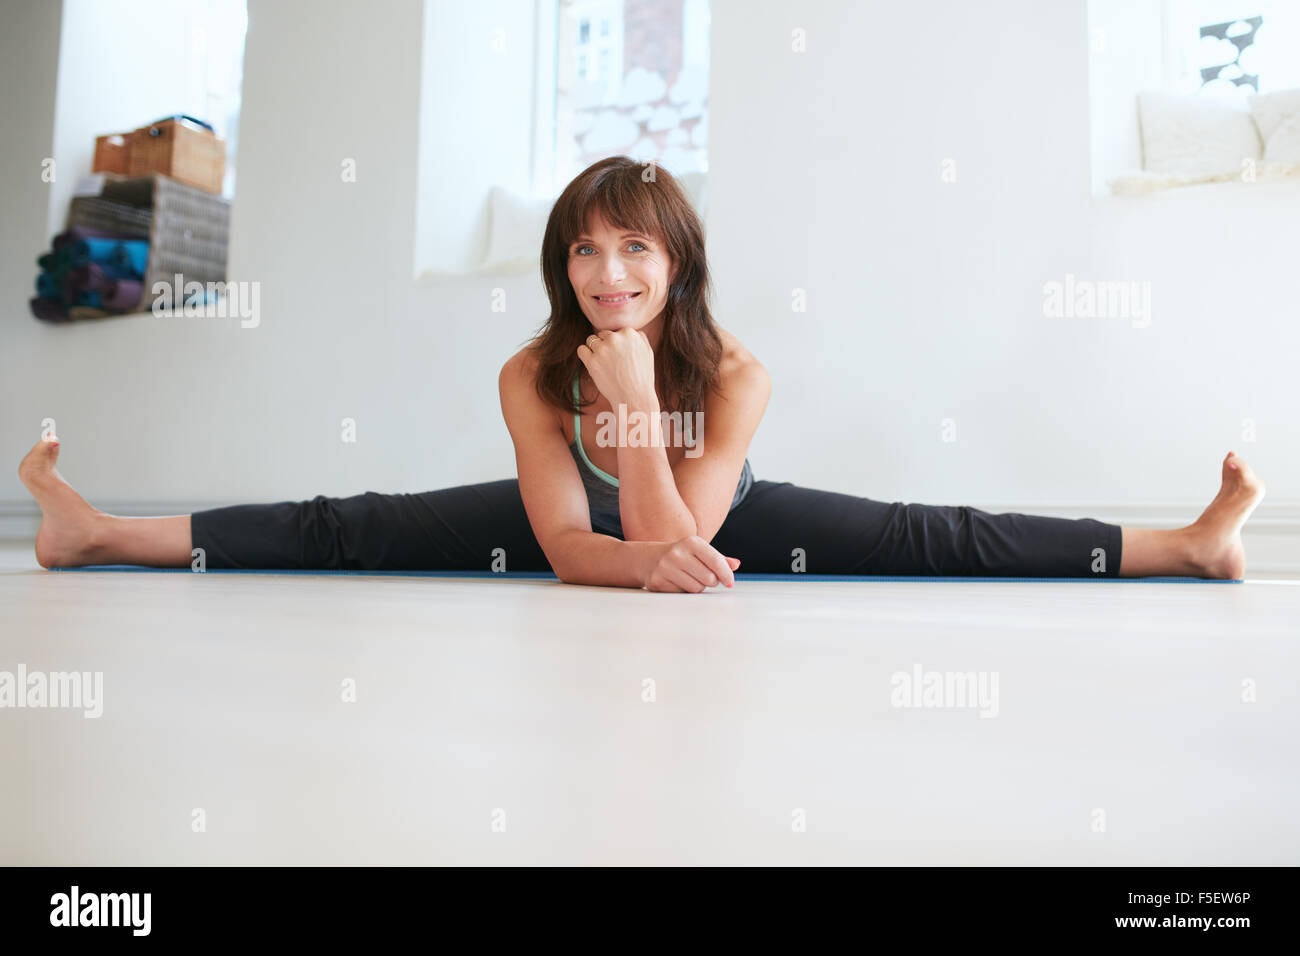 Photo of flexible woman doing the splits. Attractive female practices yoga at gym, looking at camera smiling. Upavistha - Stock Image